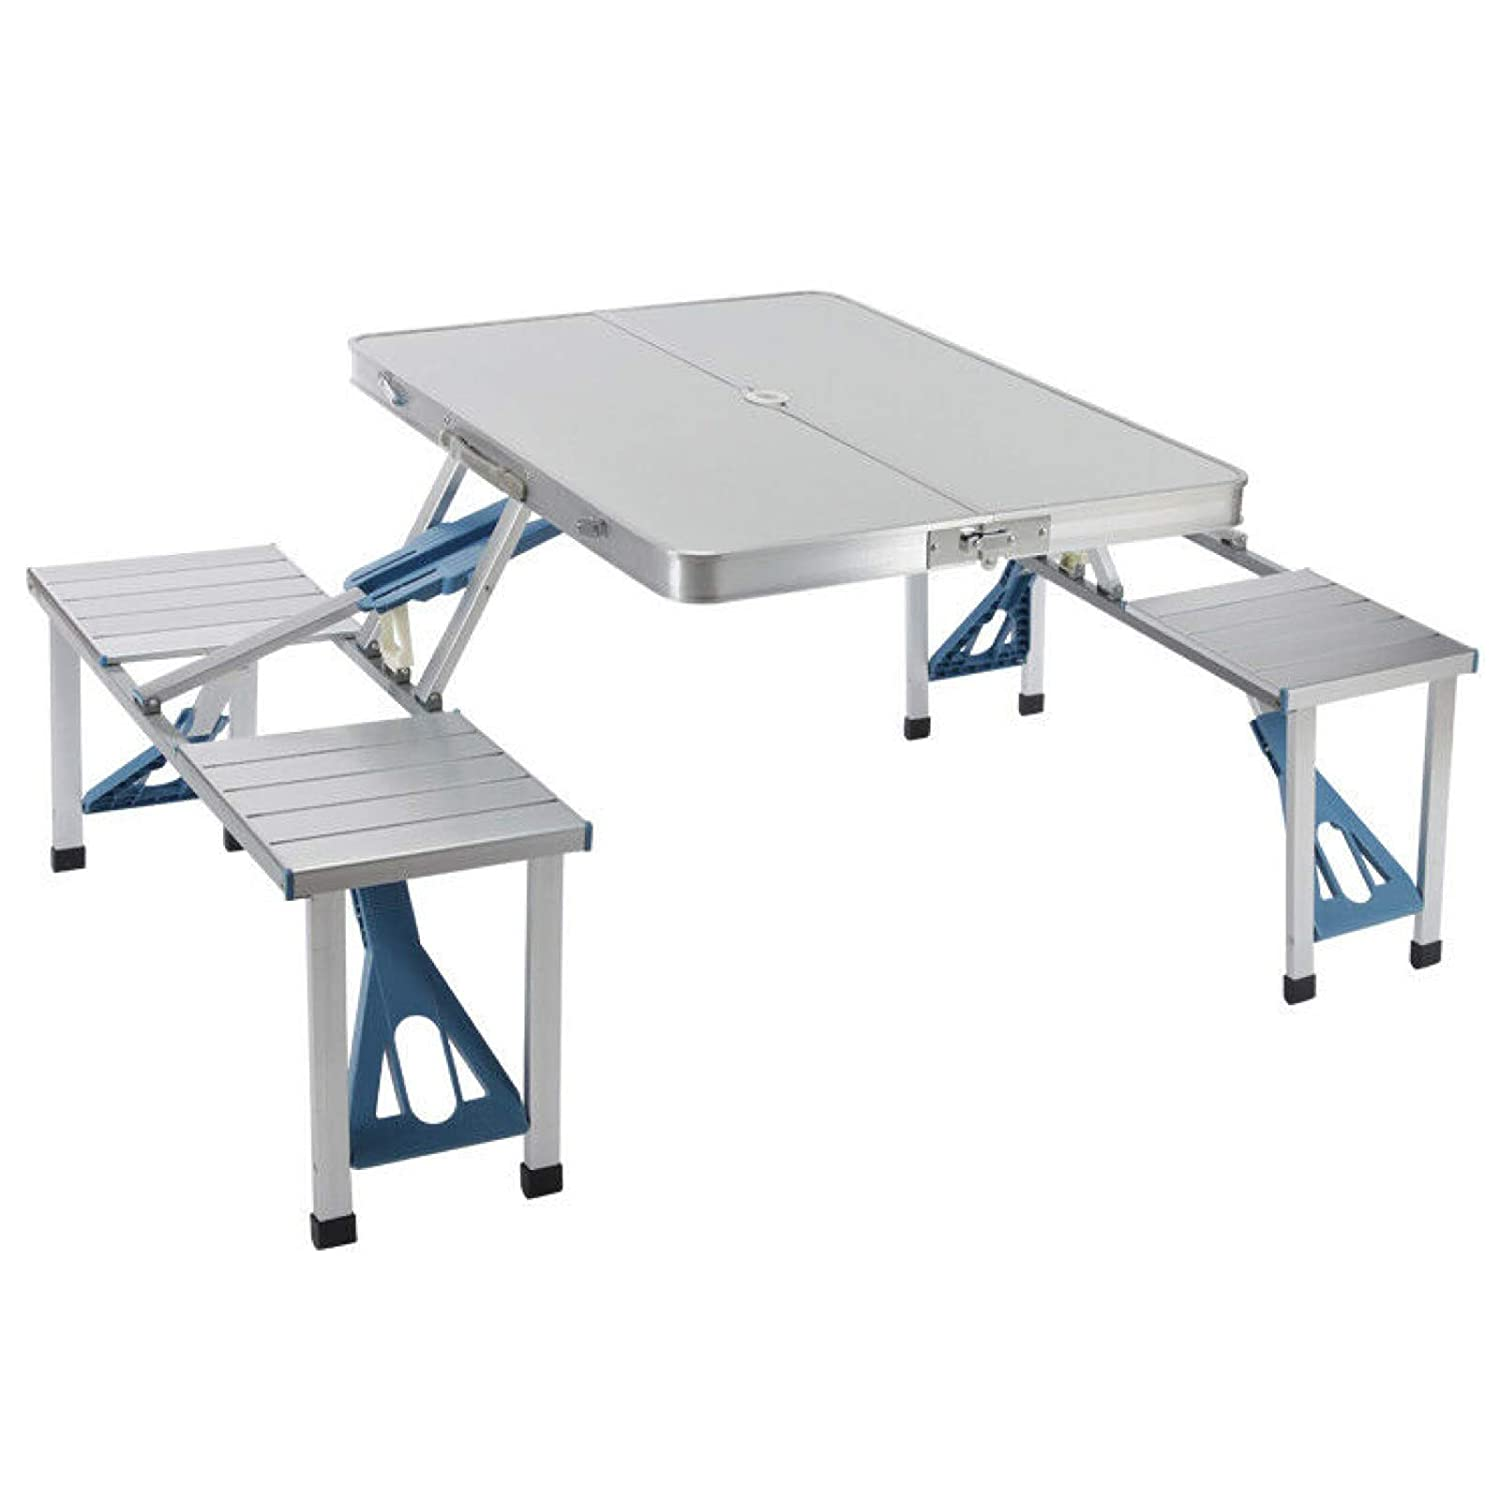 Cypress Shop Folding Table Camping Picnic Table Aluminum Table Dining Table Camping Table Picnic Table Portable BBQ Picnic Barbecue Party Dining Camping Table RV Trips Party (with 4 Seats)